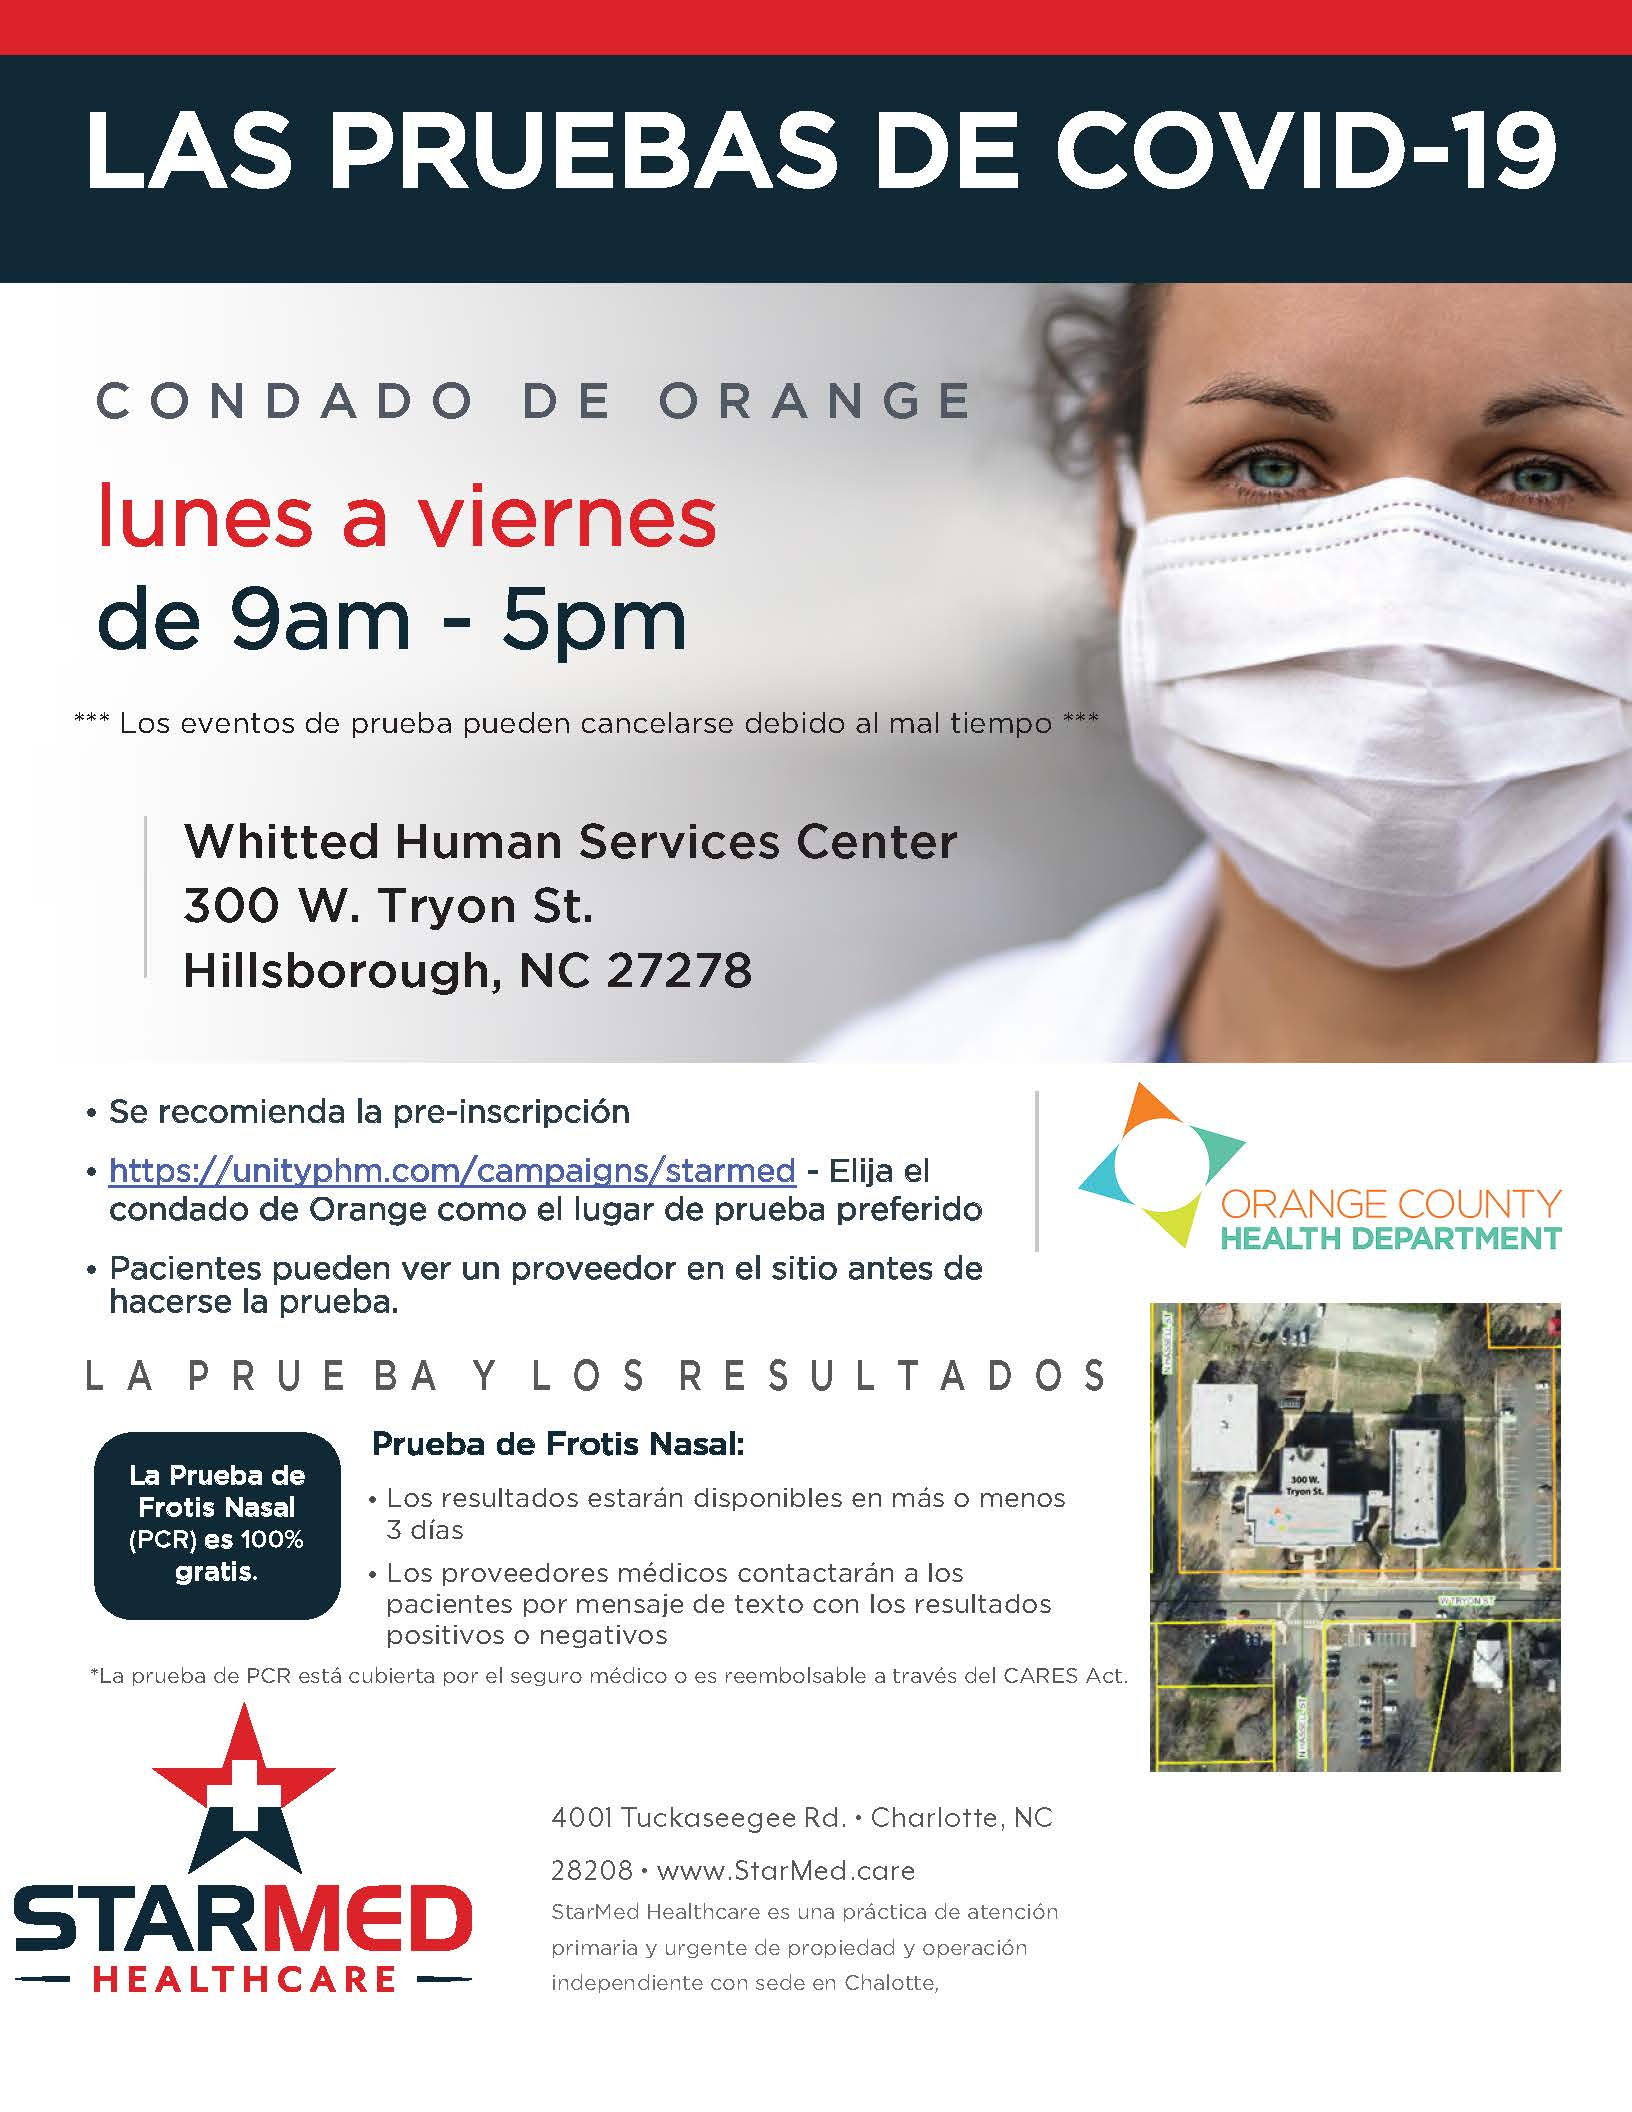 SM_Covid19Flyer_OrangeCountyHD_WeekdayTesting_SPANISH Opens in new window